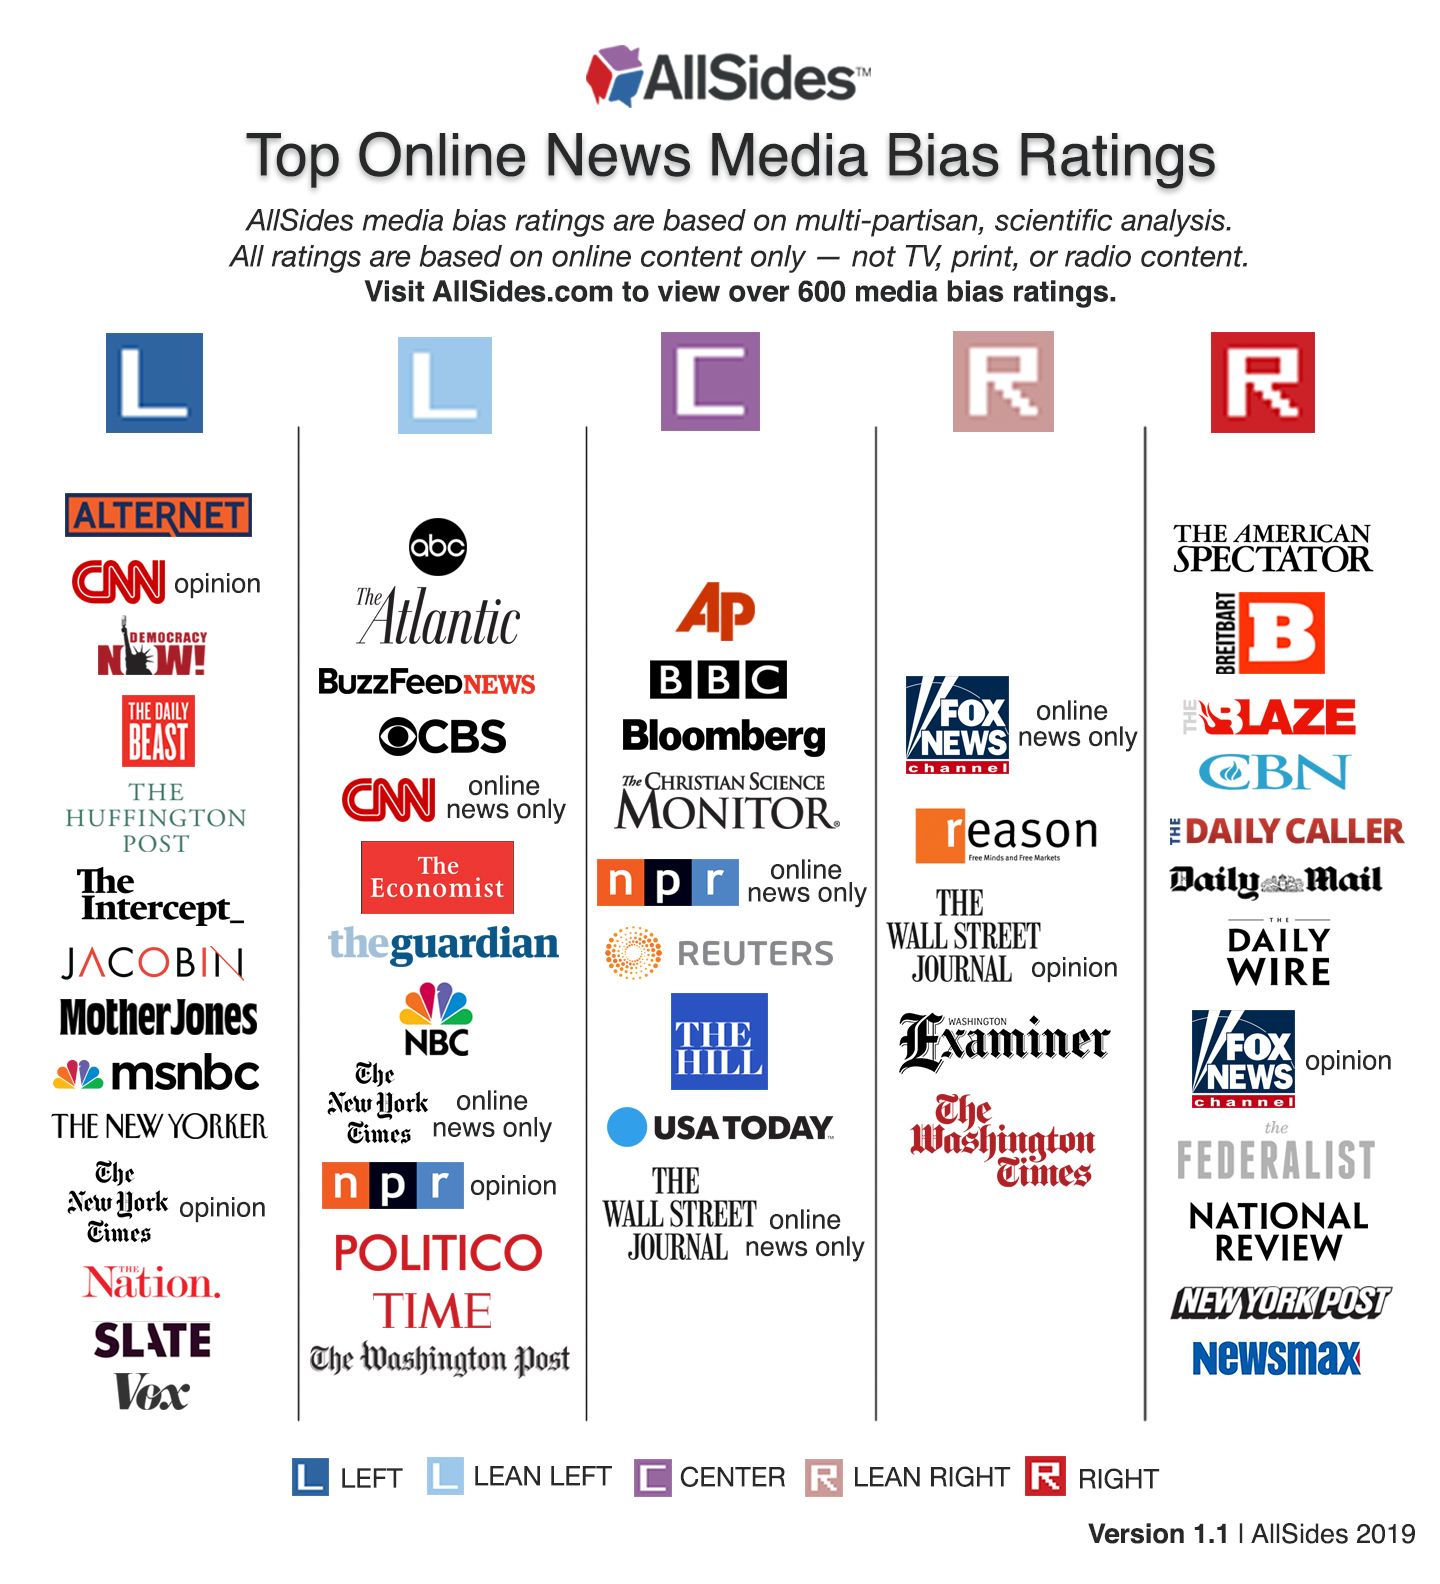 Media Bias Ratings